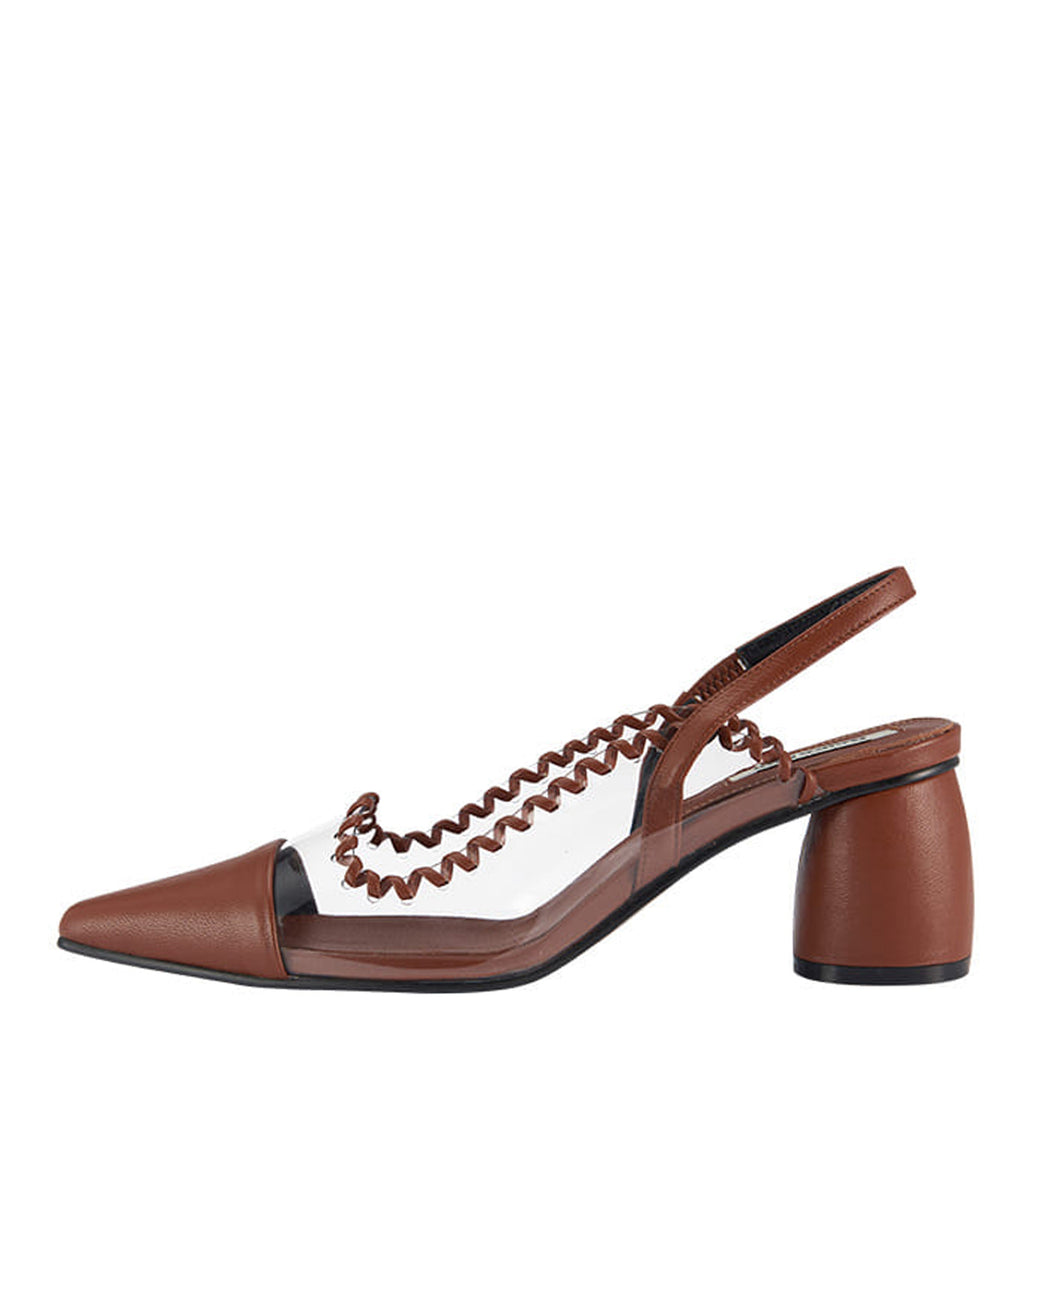 Reike Nen:PVC Curved Middle Slingback – Clear + Brown,ANOMIE